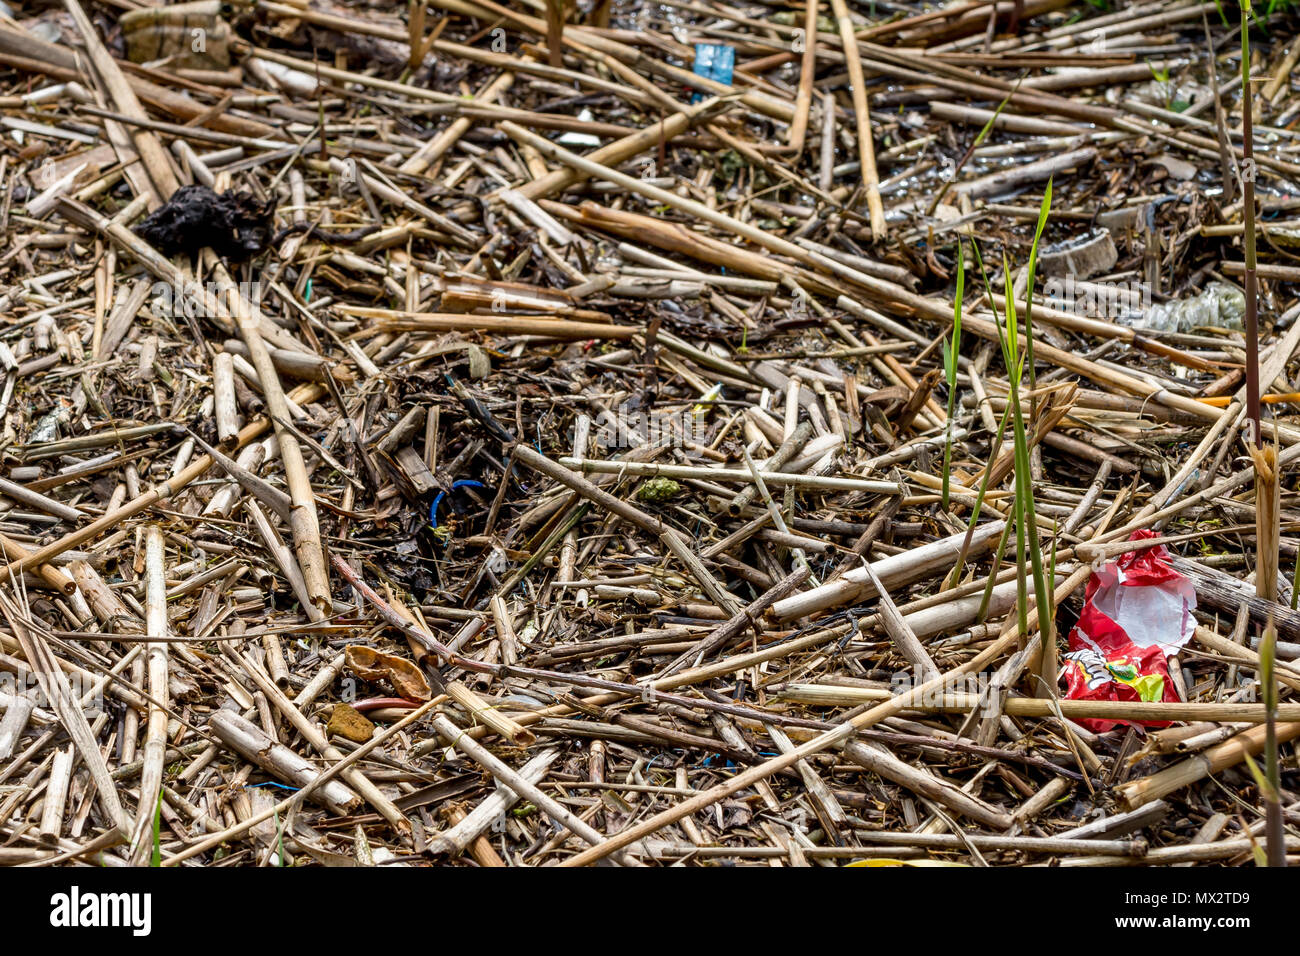 Plastic litter pollution washed up amongst the redeemed debris on the shore of Oulton Broad, Lowestoft, Suffolk - Stock Image